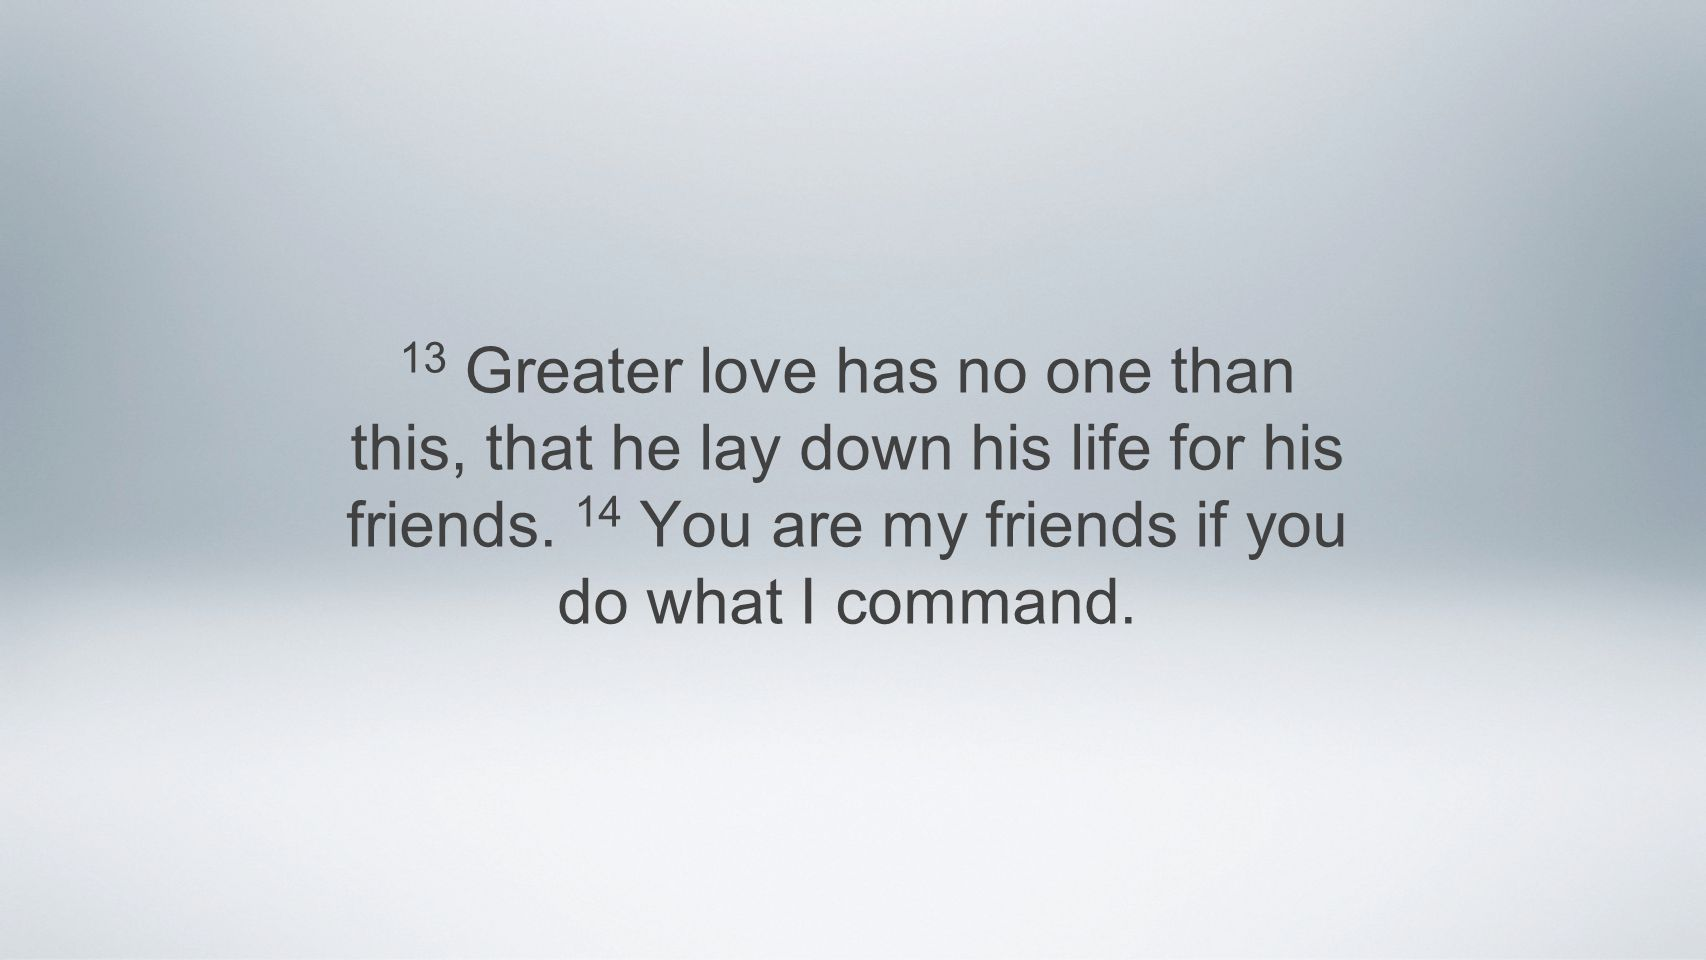 13 Greater love has no one than this, that he lay down his life for his friends.